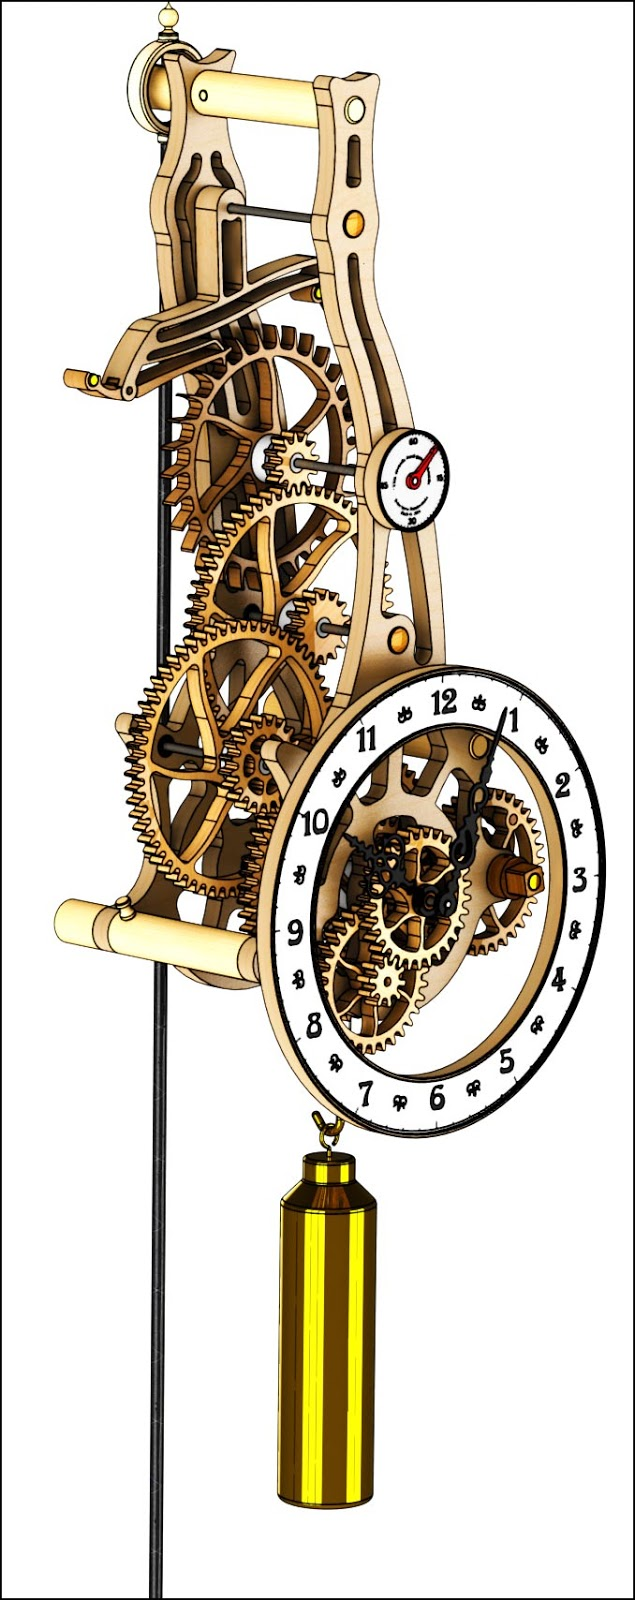 Best Woodworking Plan Site: Plans to Making Wooden Clock